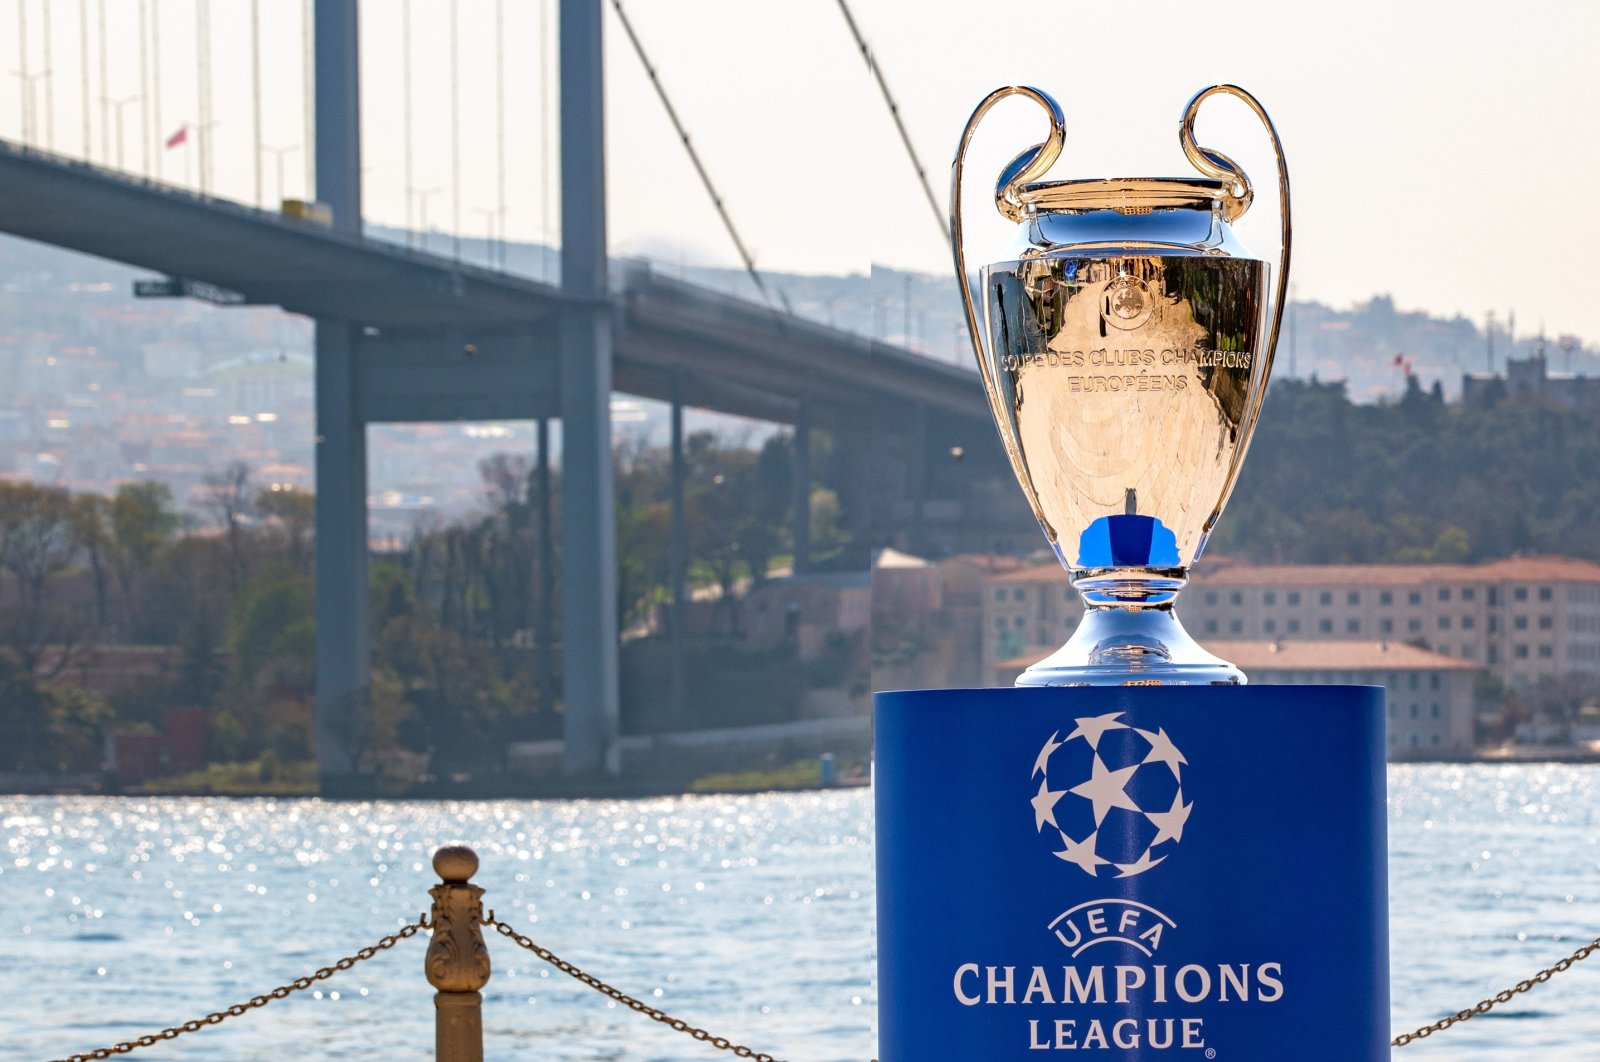 This file photo shows the Champions League trophy by the Bosporus for the final match orginally scheduled to take place in Istanbul, Turkey,  on May 13, 2021. (DHA Photo)